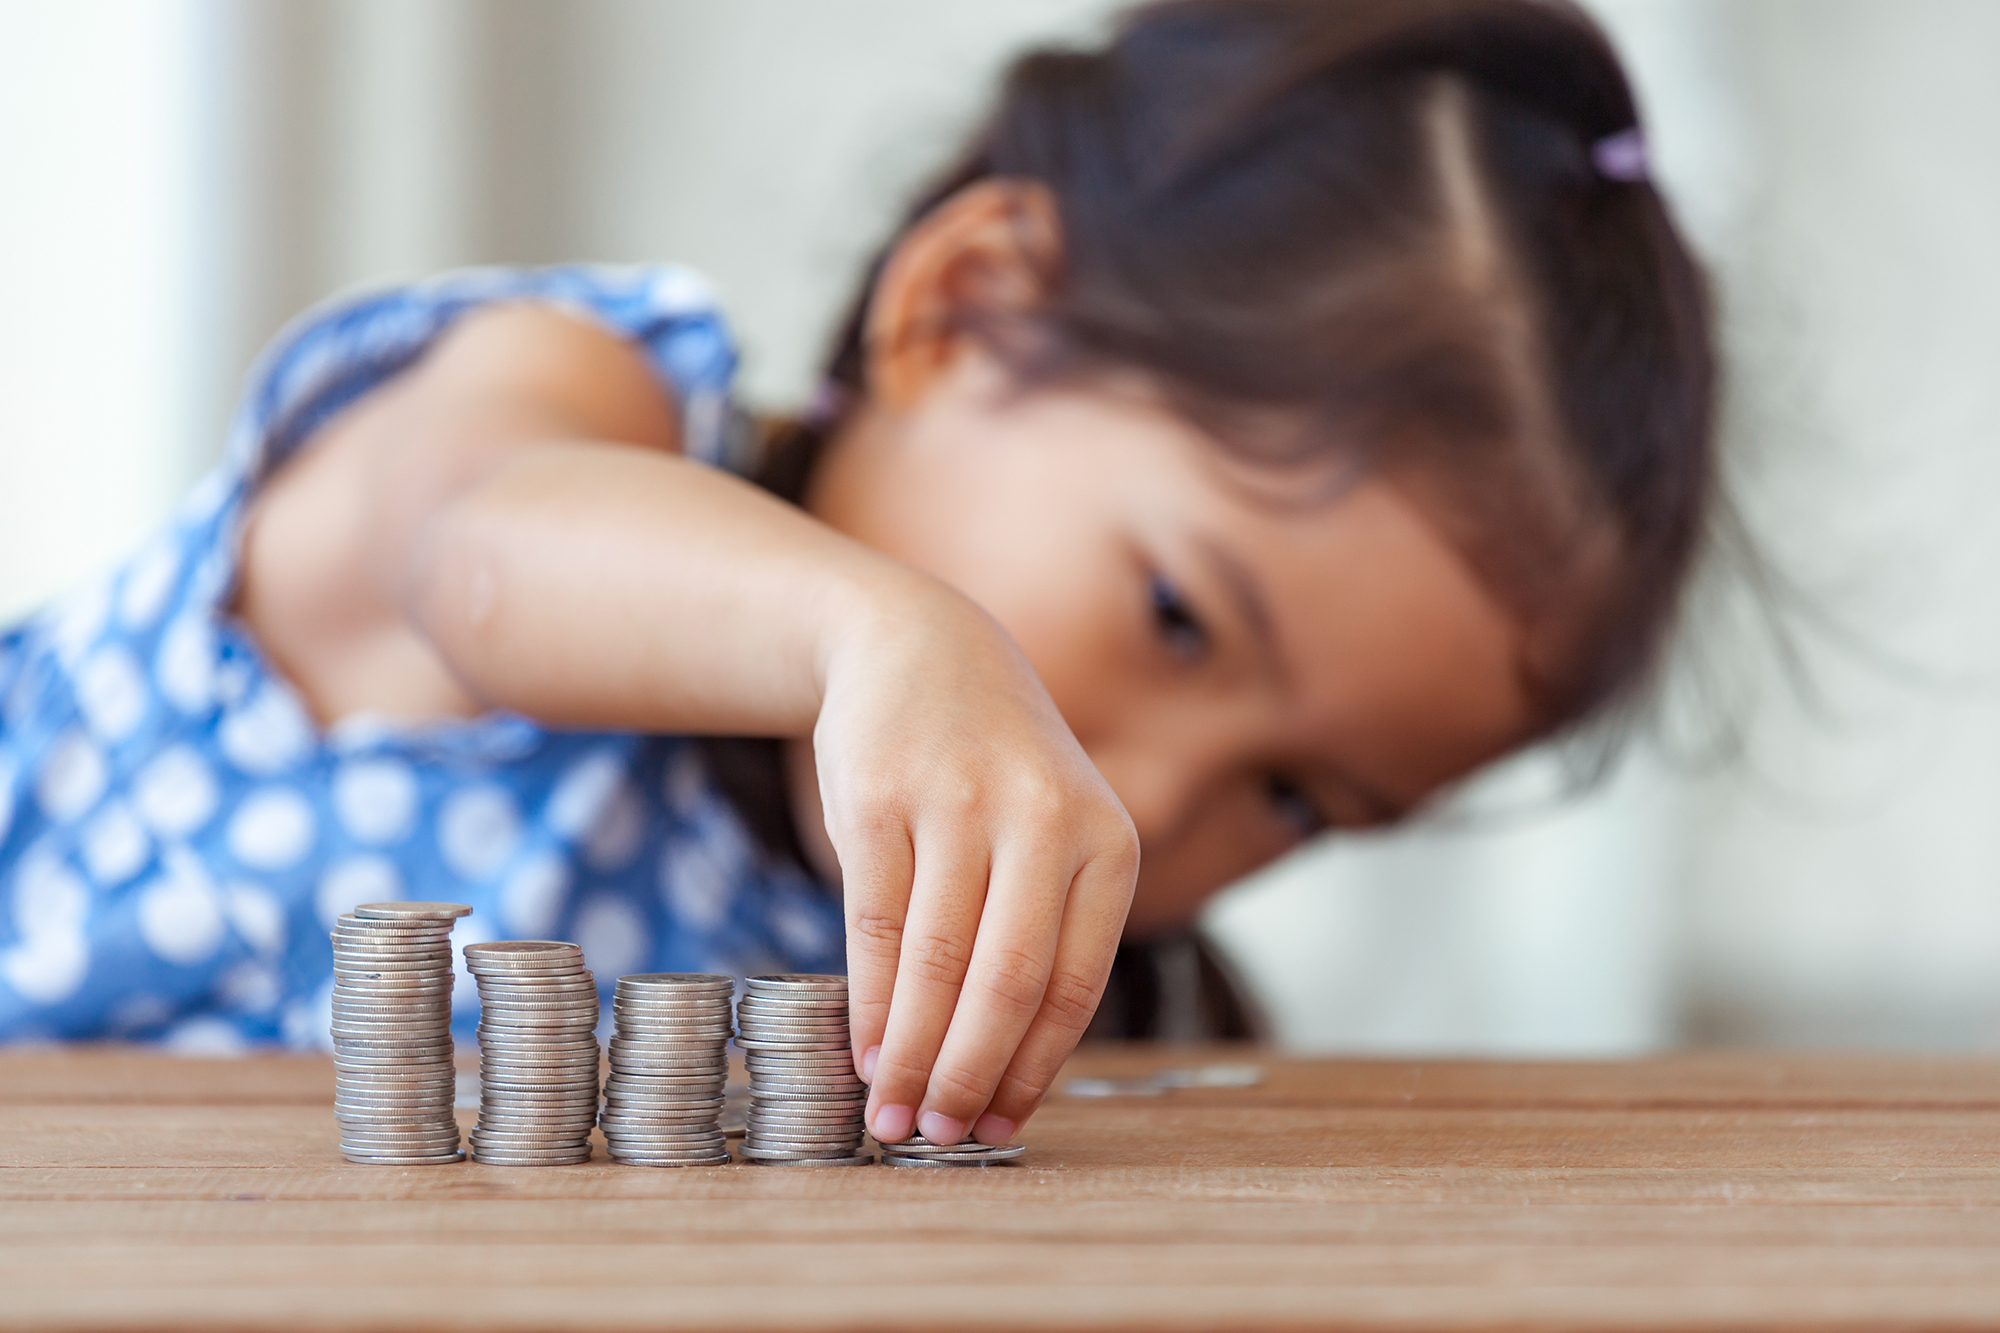 Little girl with coins. (Image: Shutterstock)